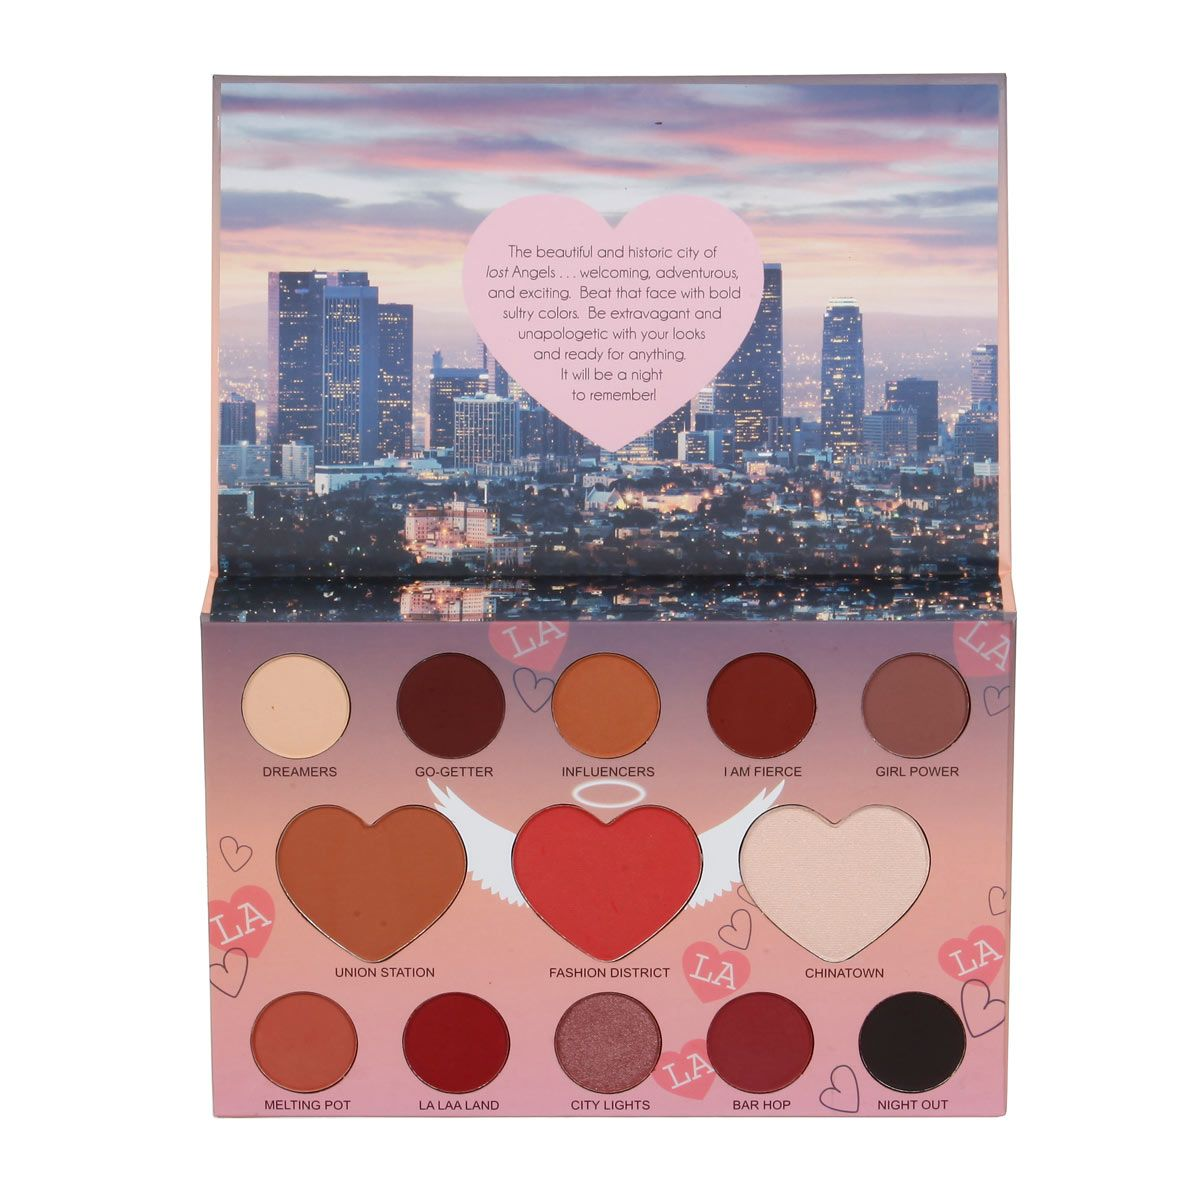 ITA2013-3 : LA Beauty Palette Angel Glam ( Downtown Los Angeles ) 6 PC